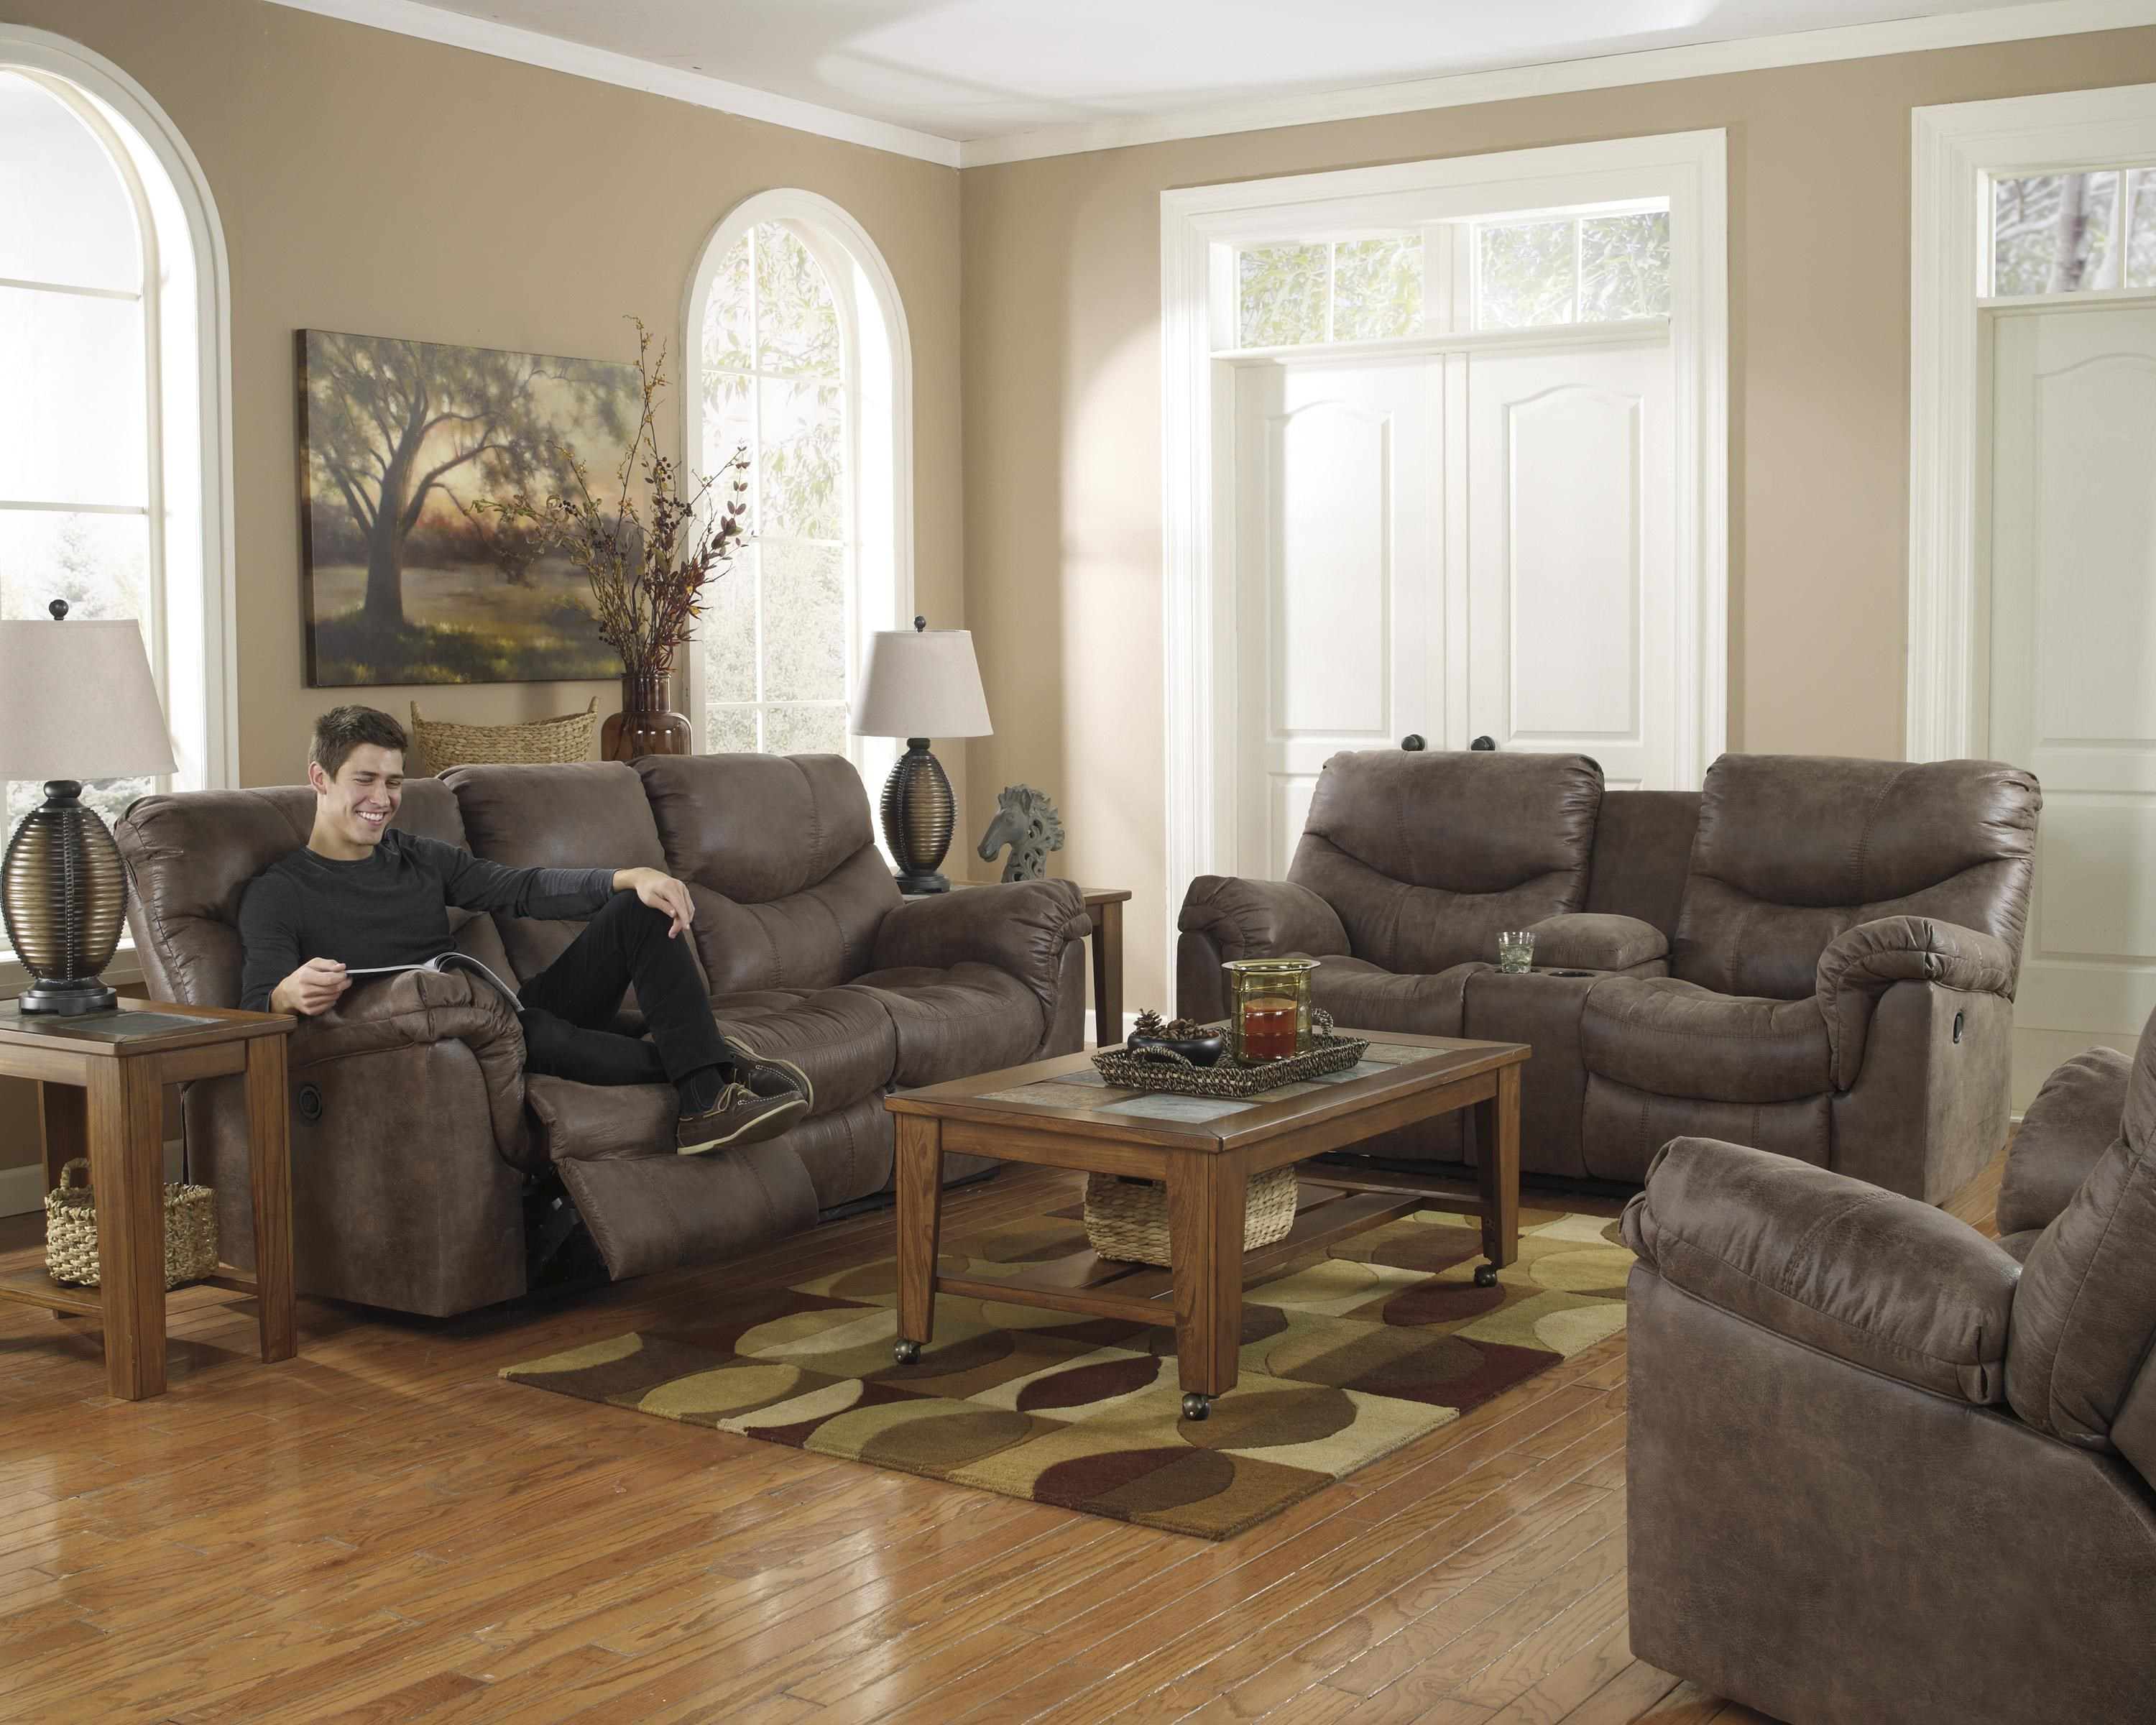 Signature Design by Ashley Alzena - Gunsmoke Reclining Living Room Group - Dream Home Furniture ...